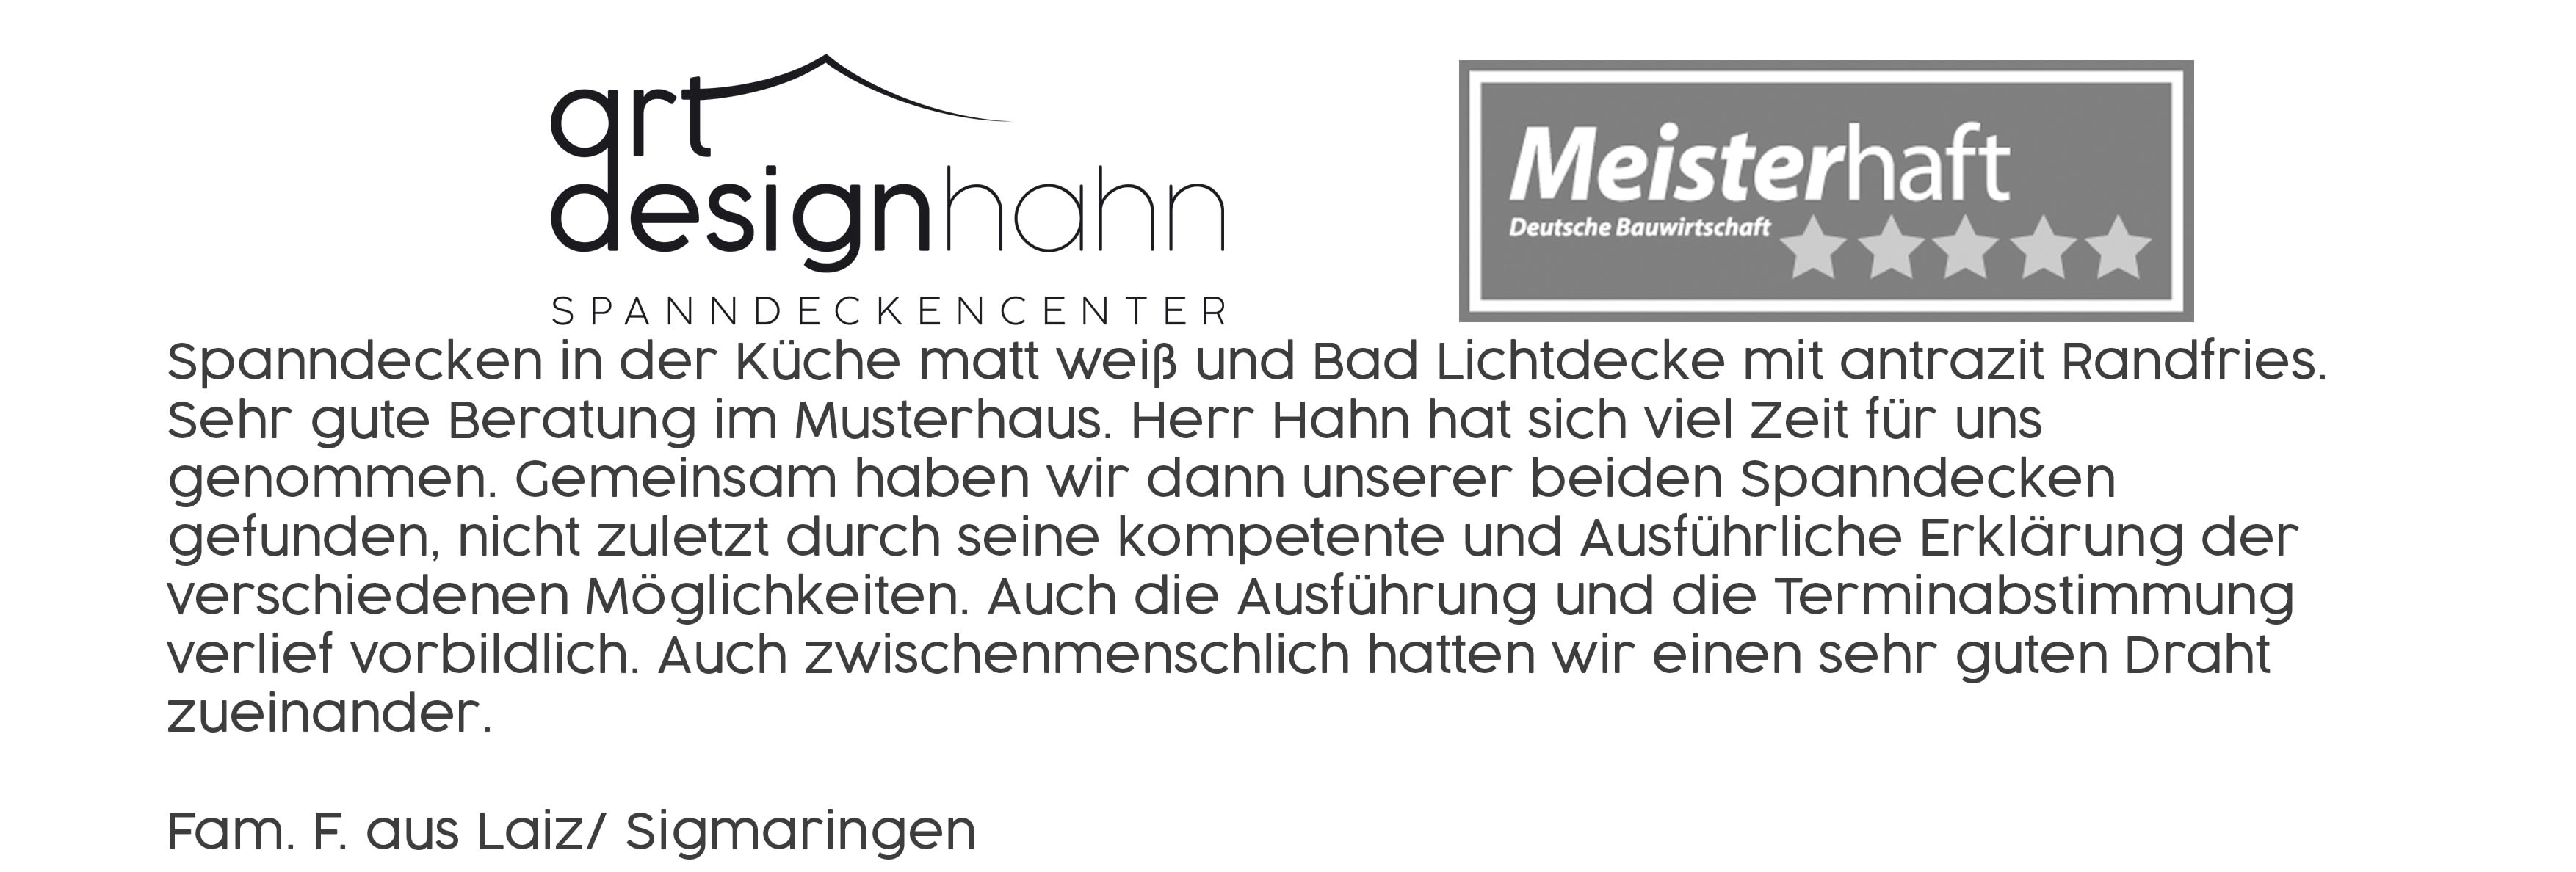 Art Design Hahn Meisterhafte Rezension 21